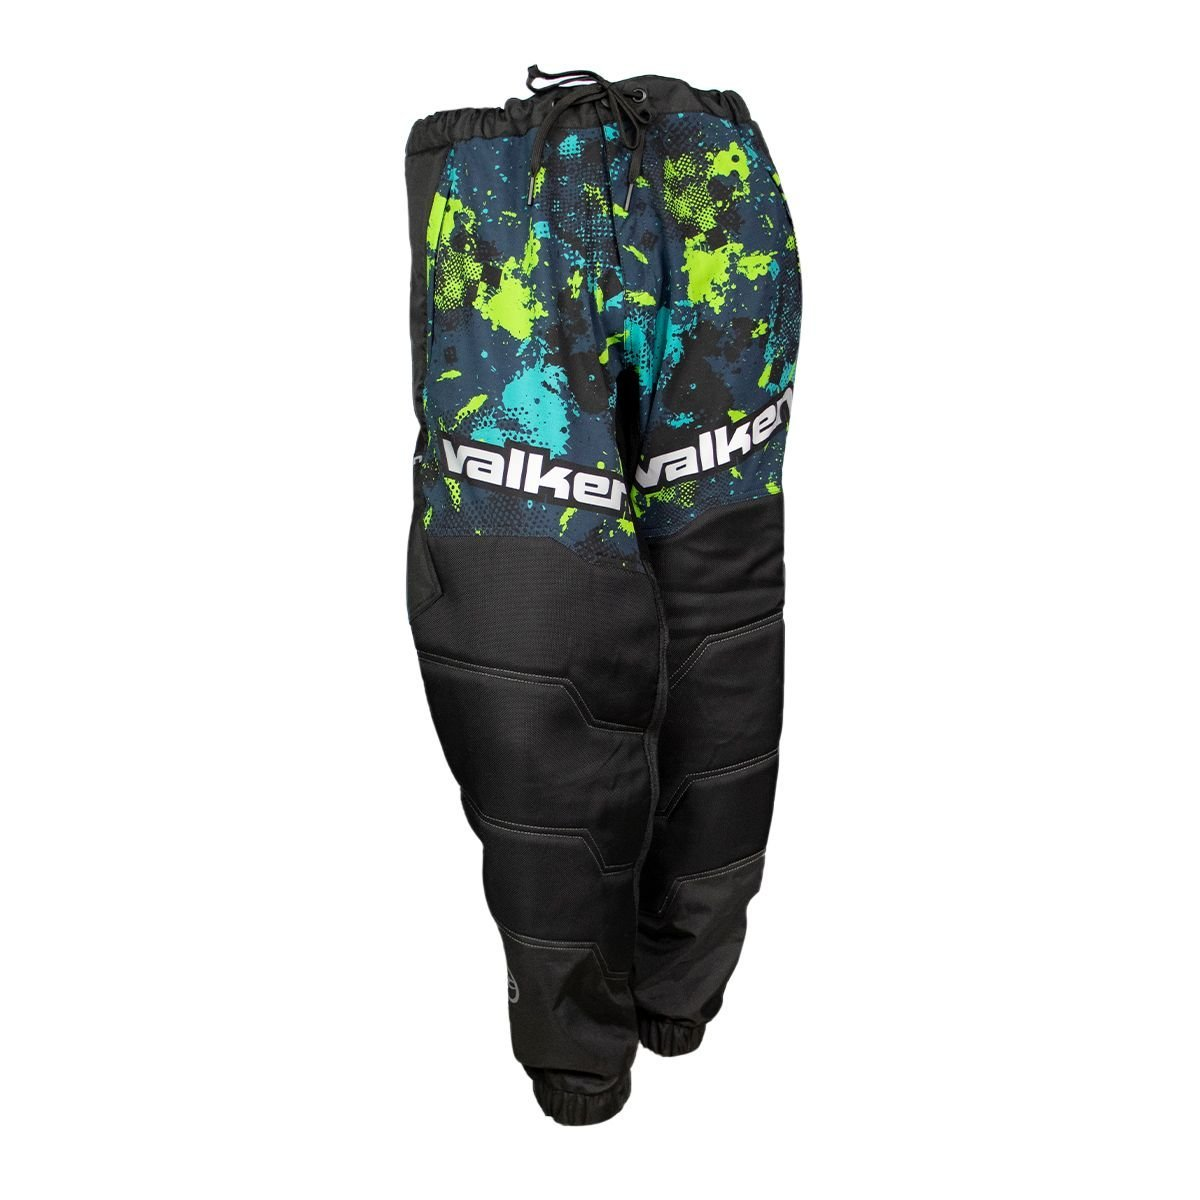 View larger image of Valken Fate GFX Jogger Paintball Pants - Green Abstract